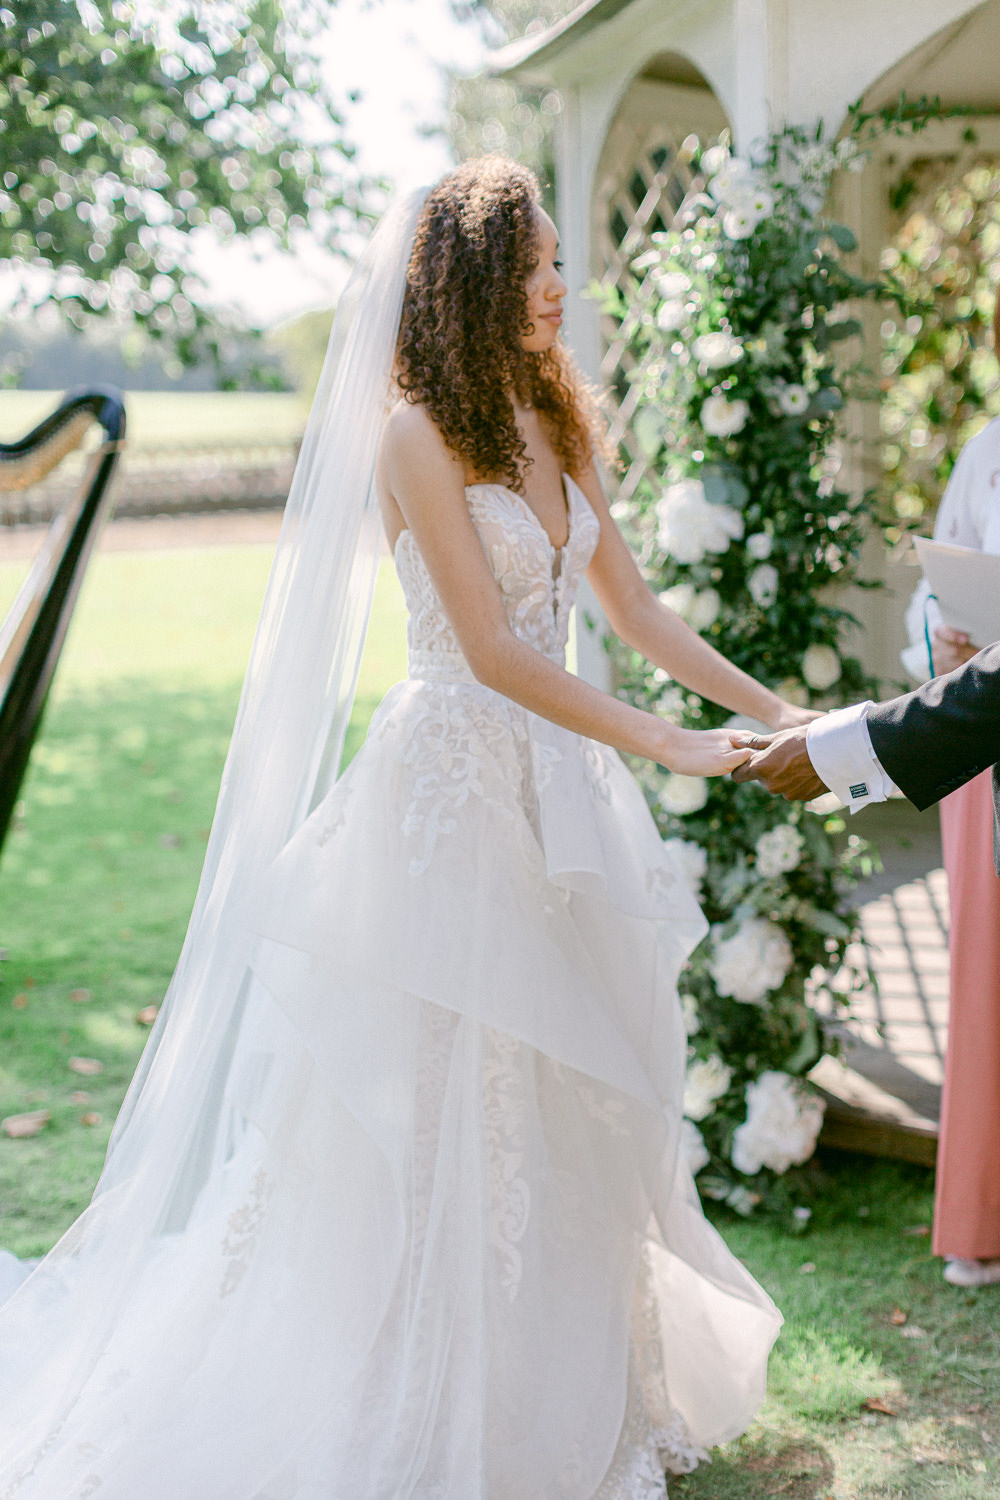 Dress Gown Bride Bridal Bride Bridal Hair Make Up Tulle Layers Sweetheart Strapless Veil Stately Home Wedding Whitney Lloyd Photography